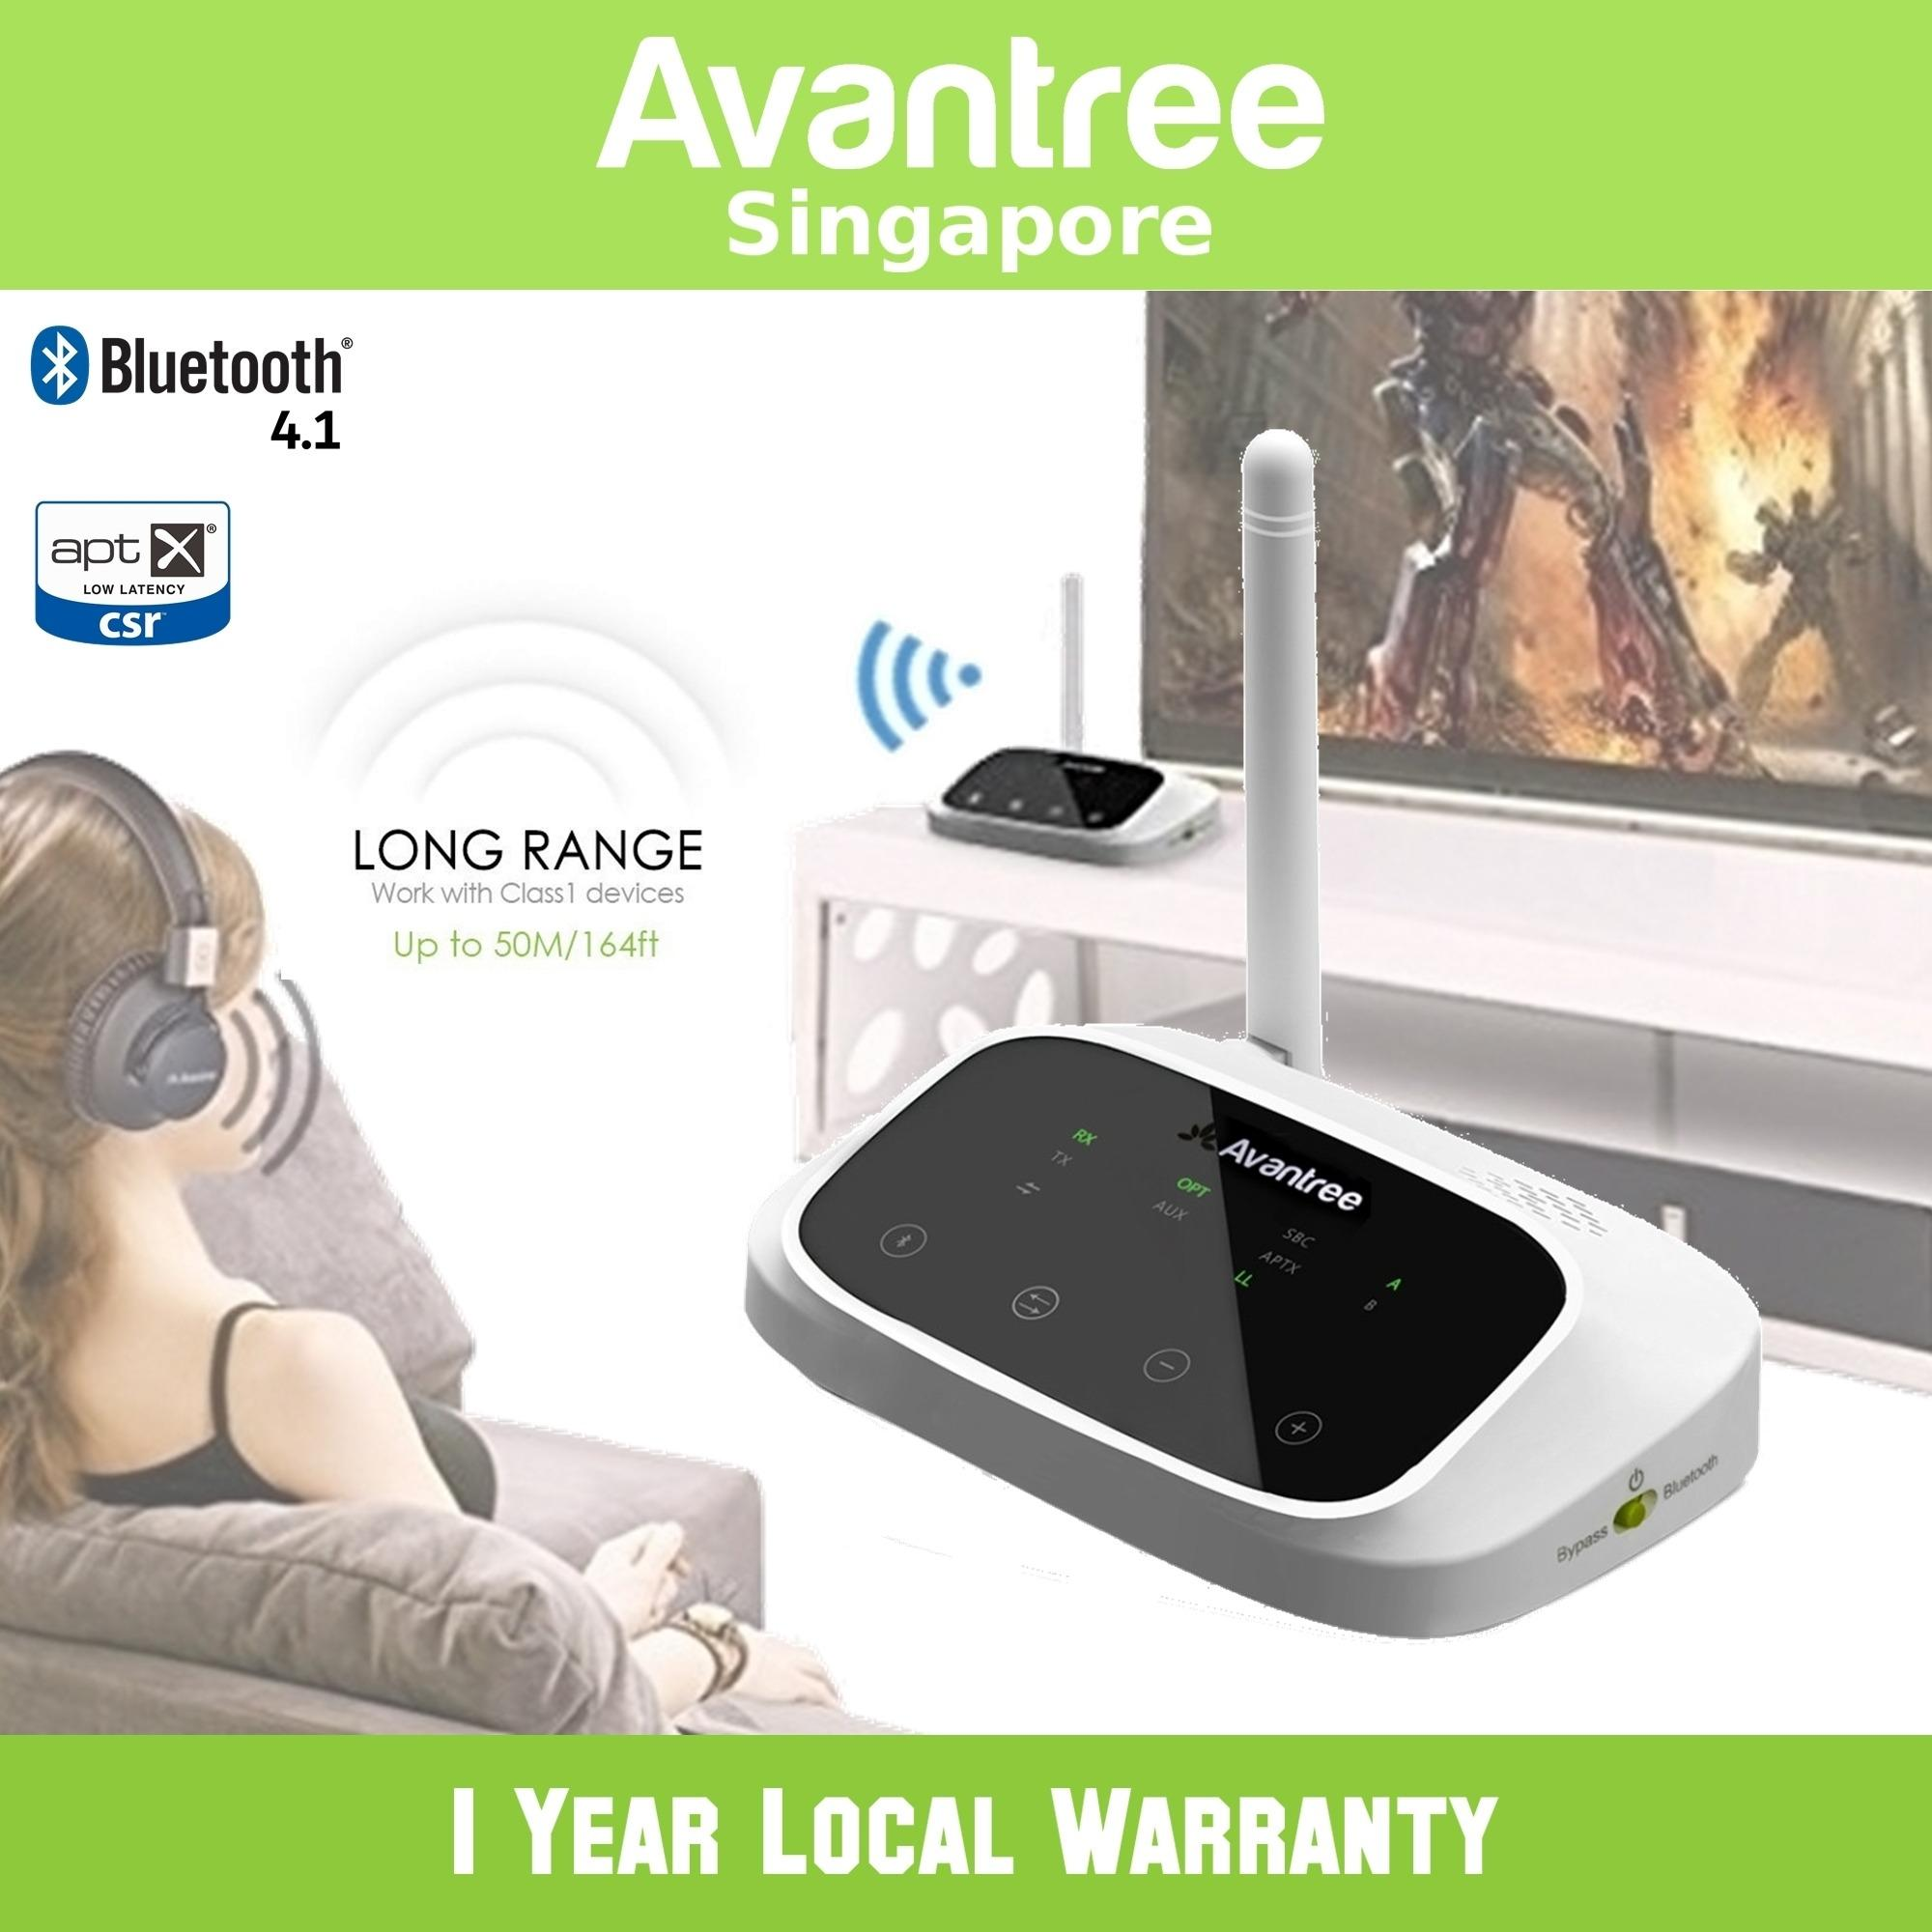 Price Avantree Oasis Long Range Bluetooth Transmitter Receiver Optical Rca 3 5Mm Bypass Voice Codec Display For Tv All Audio Devices Aptx Low Latency Dual Link Avantree Singapore